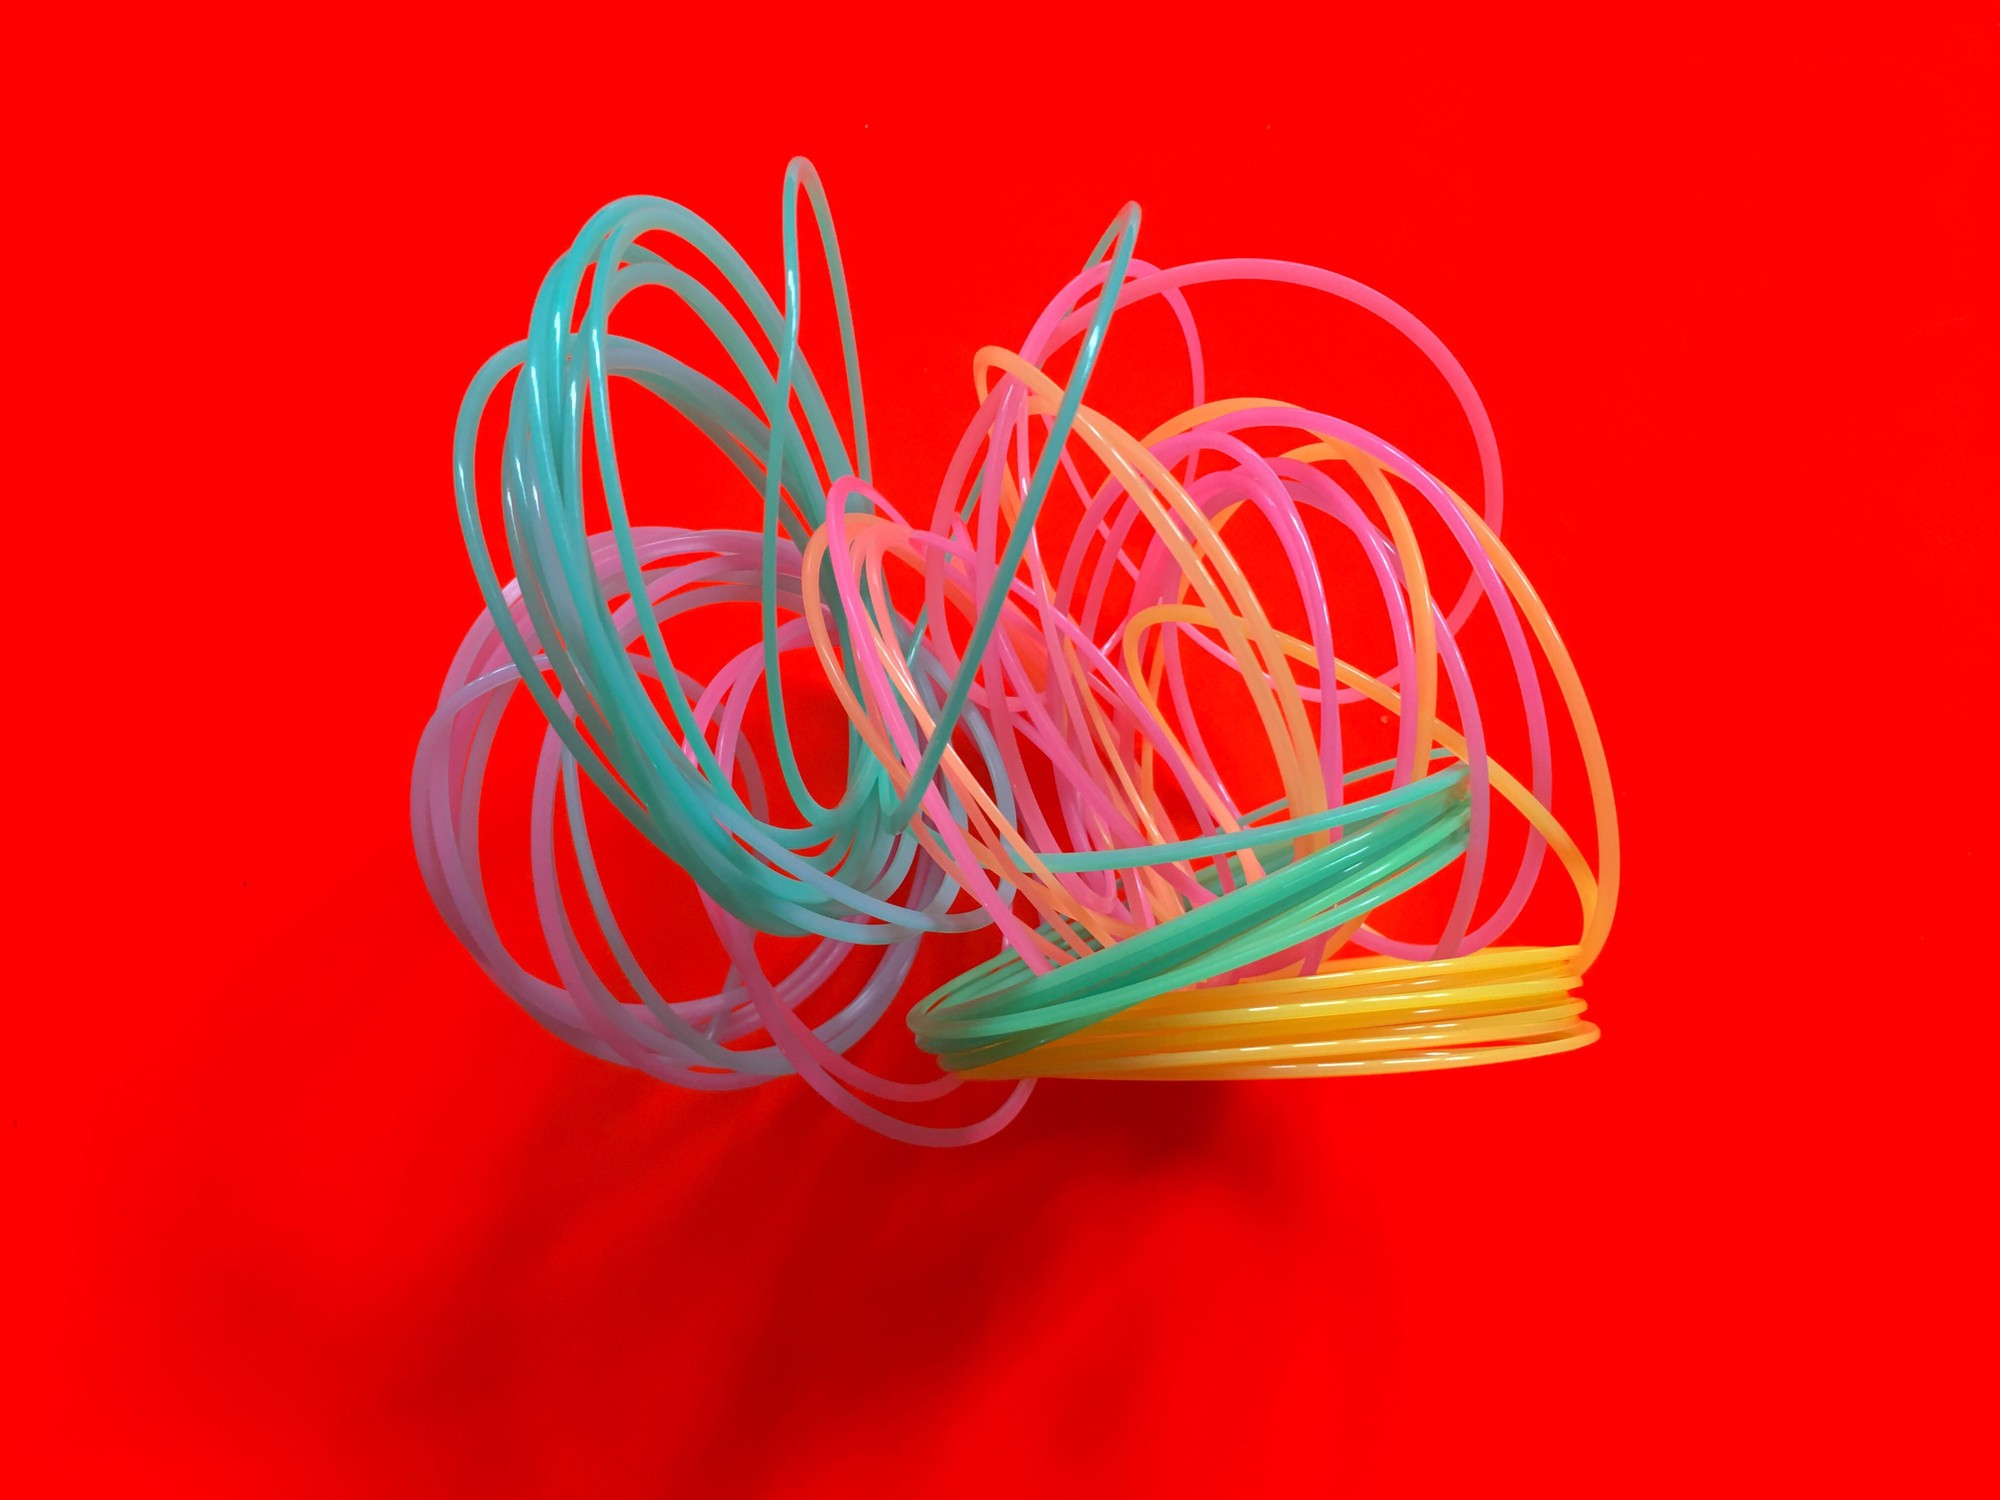 Colorful spring is all tangled up against a bright red background.